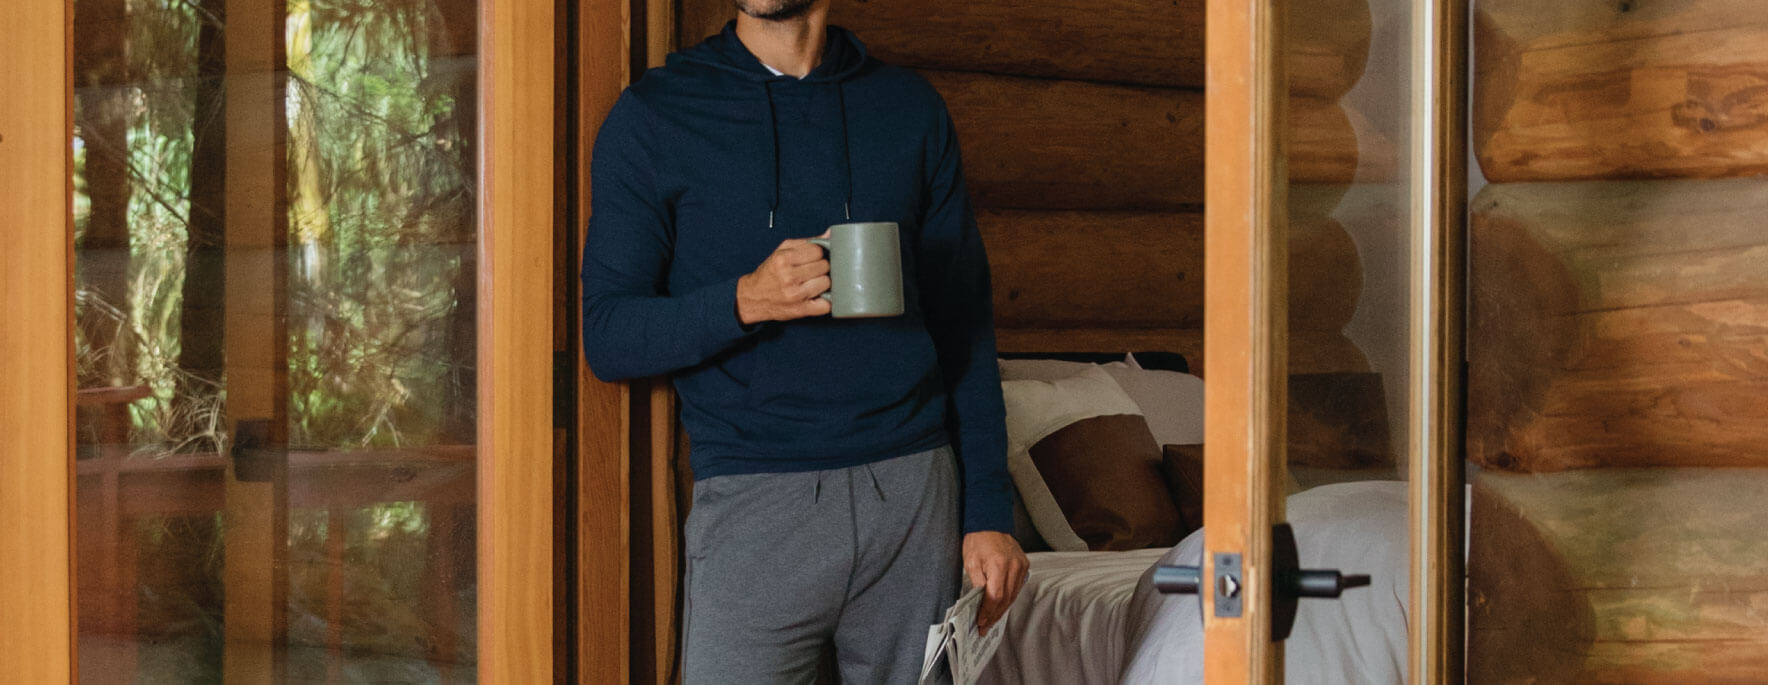 mens lounge - gift guide - bamboo apparel - tasc performance